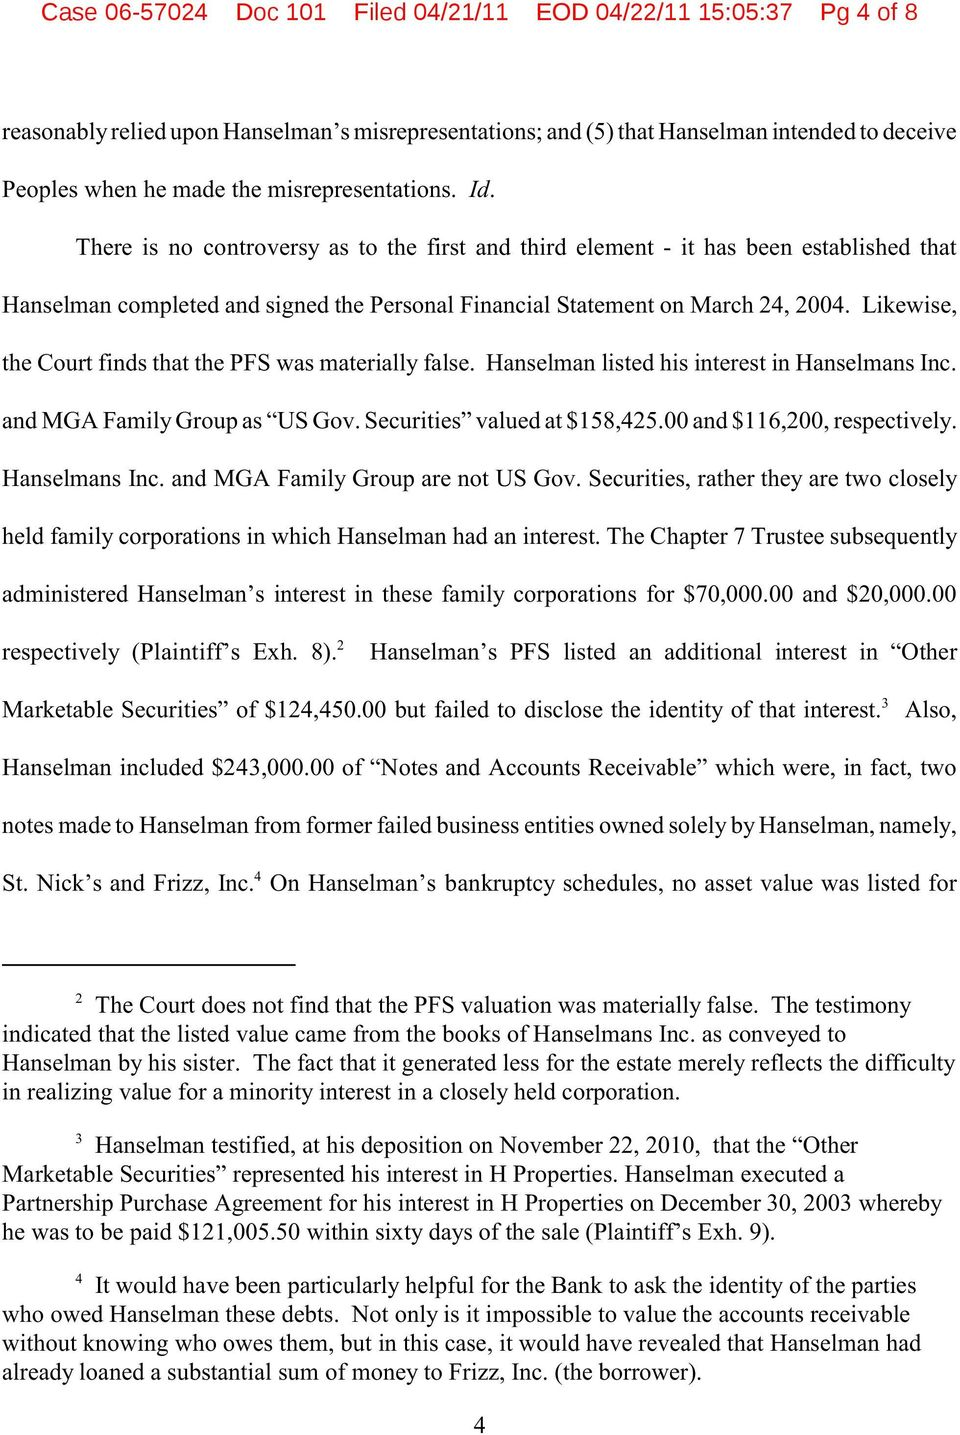 Likewise, the Court finds that the PFS was materially false. Hanselman listed his interest in Hanselmans Inc. and MGA Family Group as US Gov. Securities valued at $158,425.